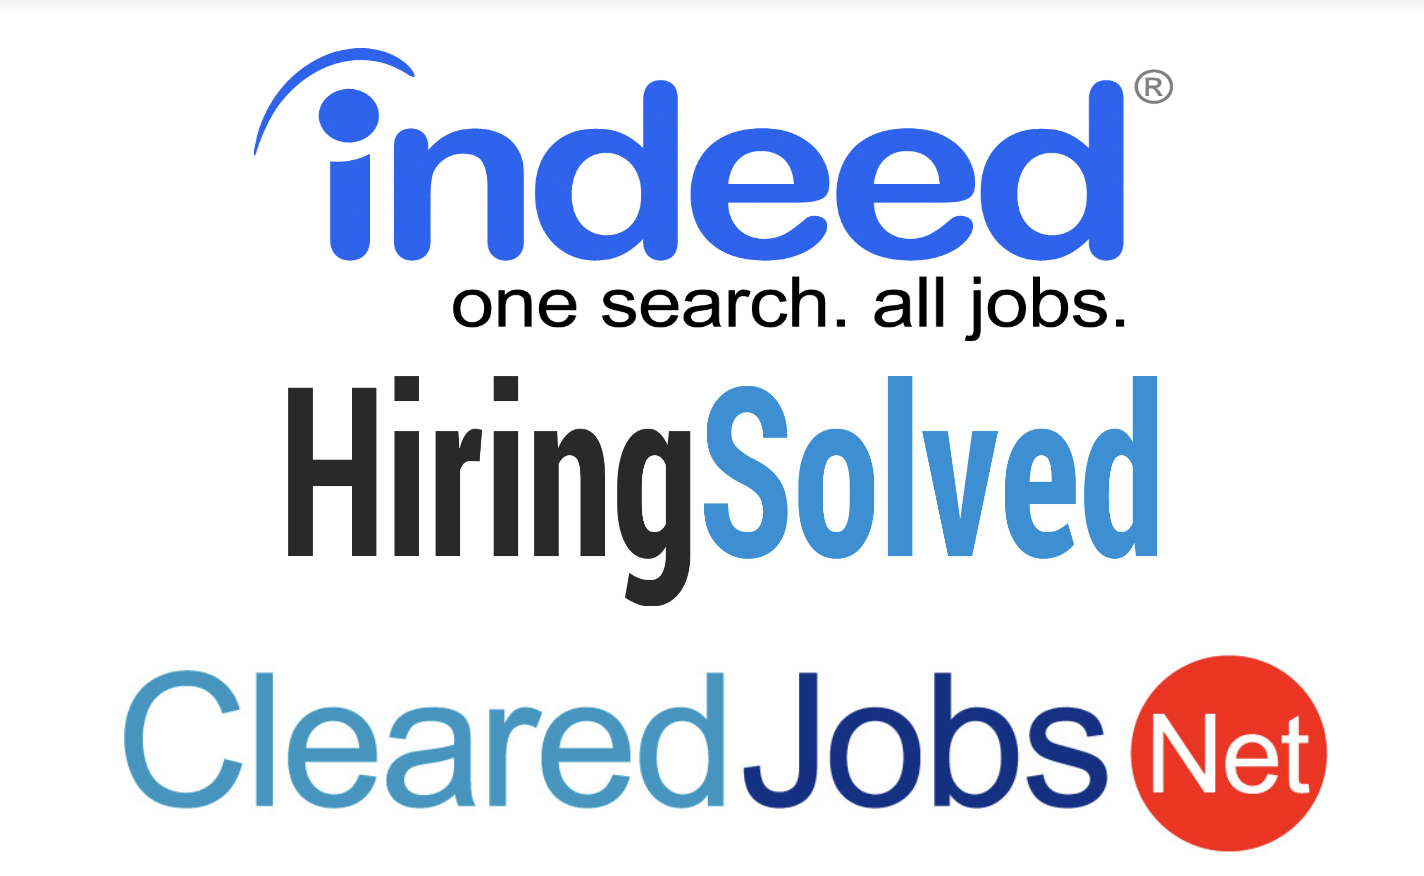 Indeed / HiringSolved / ClearedJobs.net